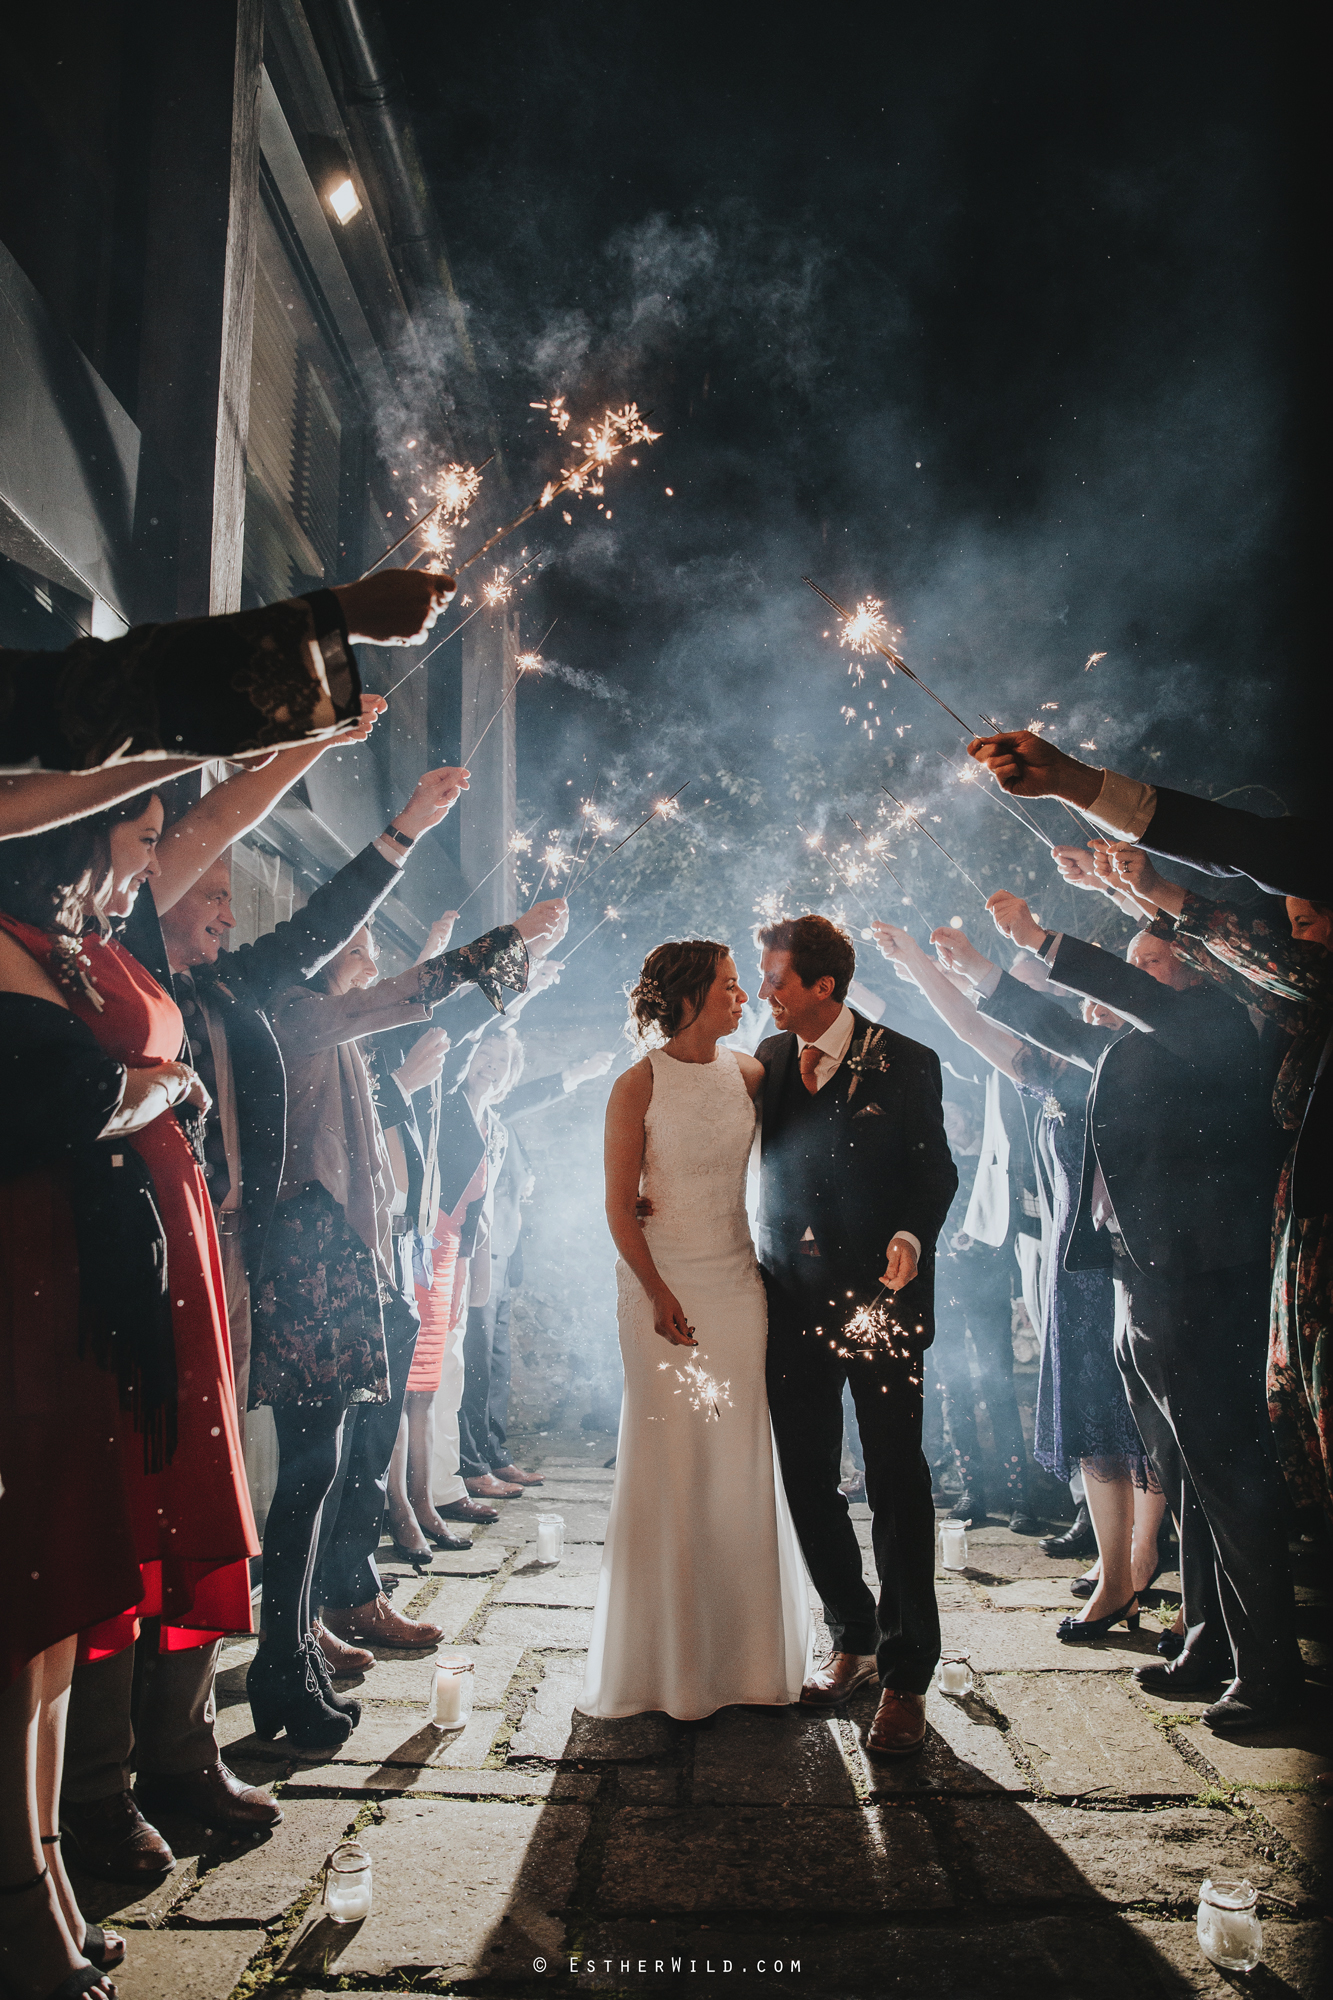 Wedding_Photographer_Chaucer_Barn_Holt_Norfolk_Country_Rustic_Venue_Copyright_Esther_Wild_IMG_2153.jpg